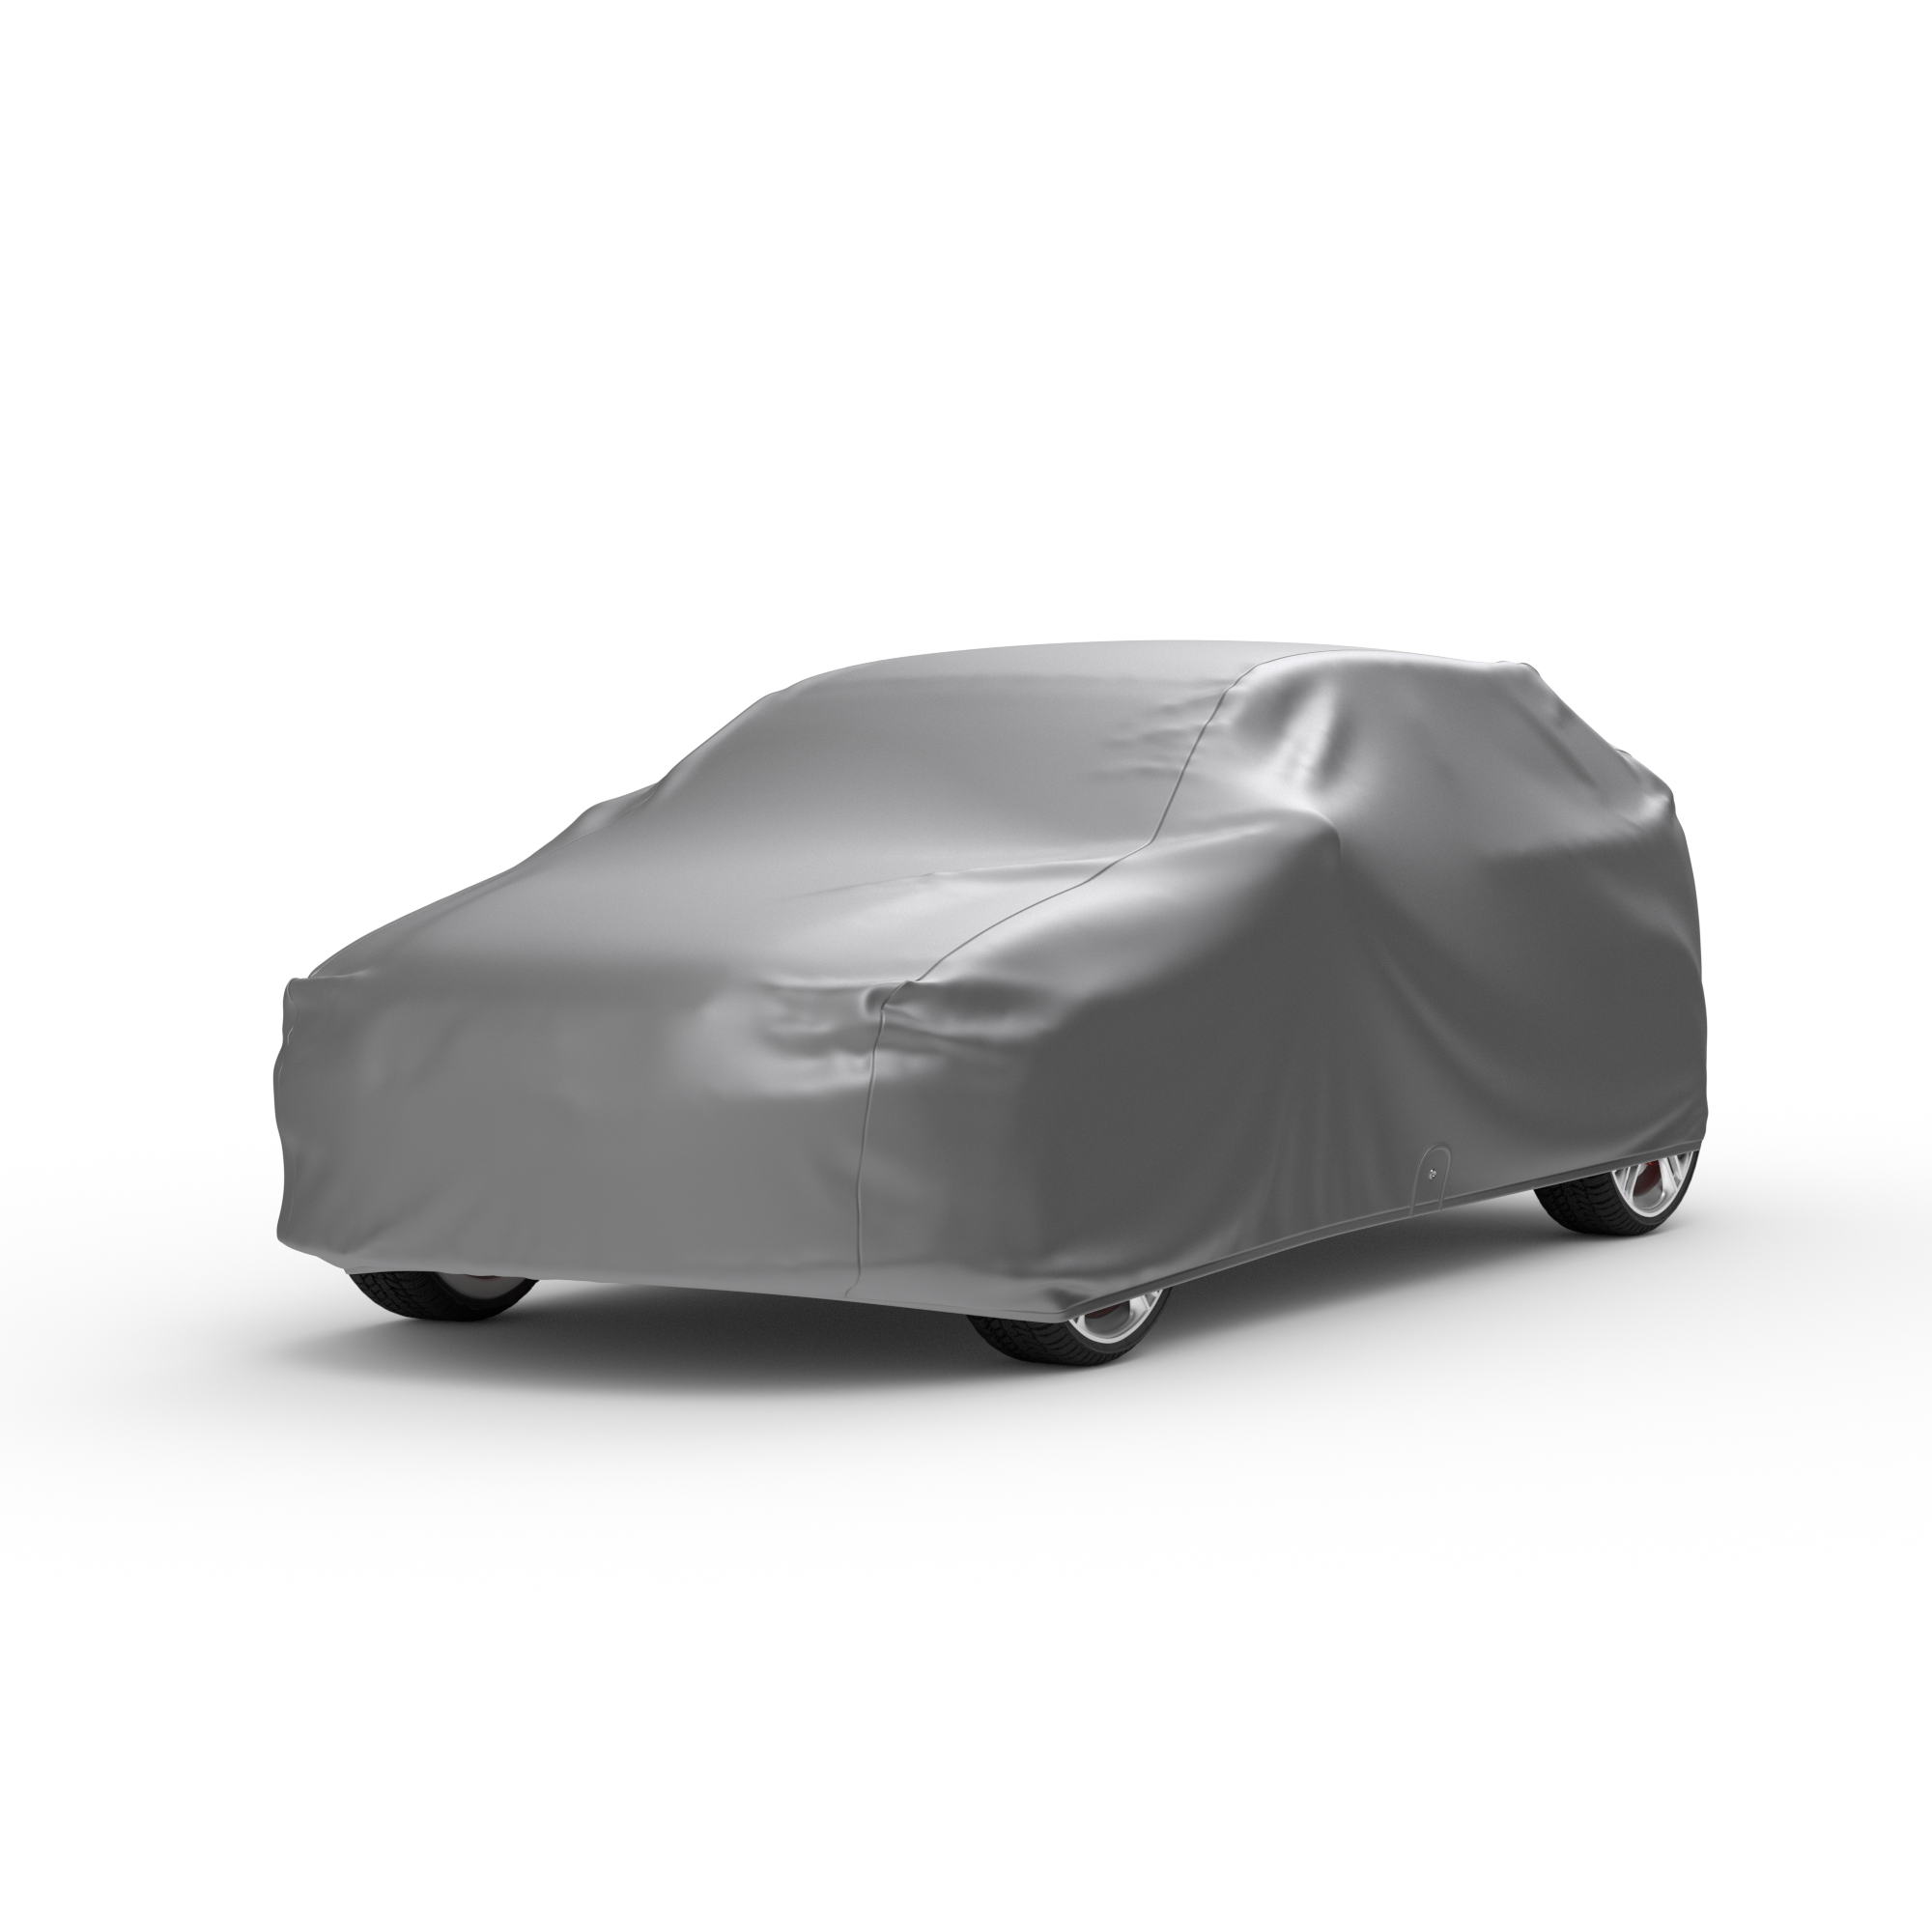 UAA Gray Fitted Indoor Outdoor High Quality Car Cover  for PORSCHE BOXSTER